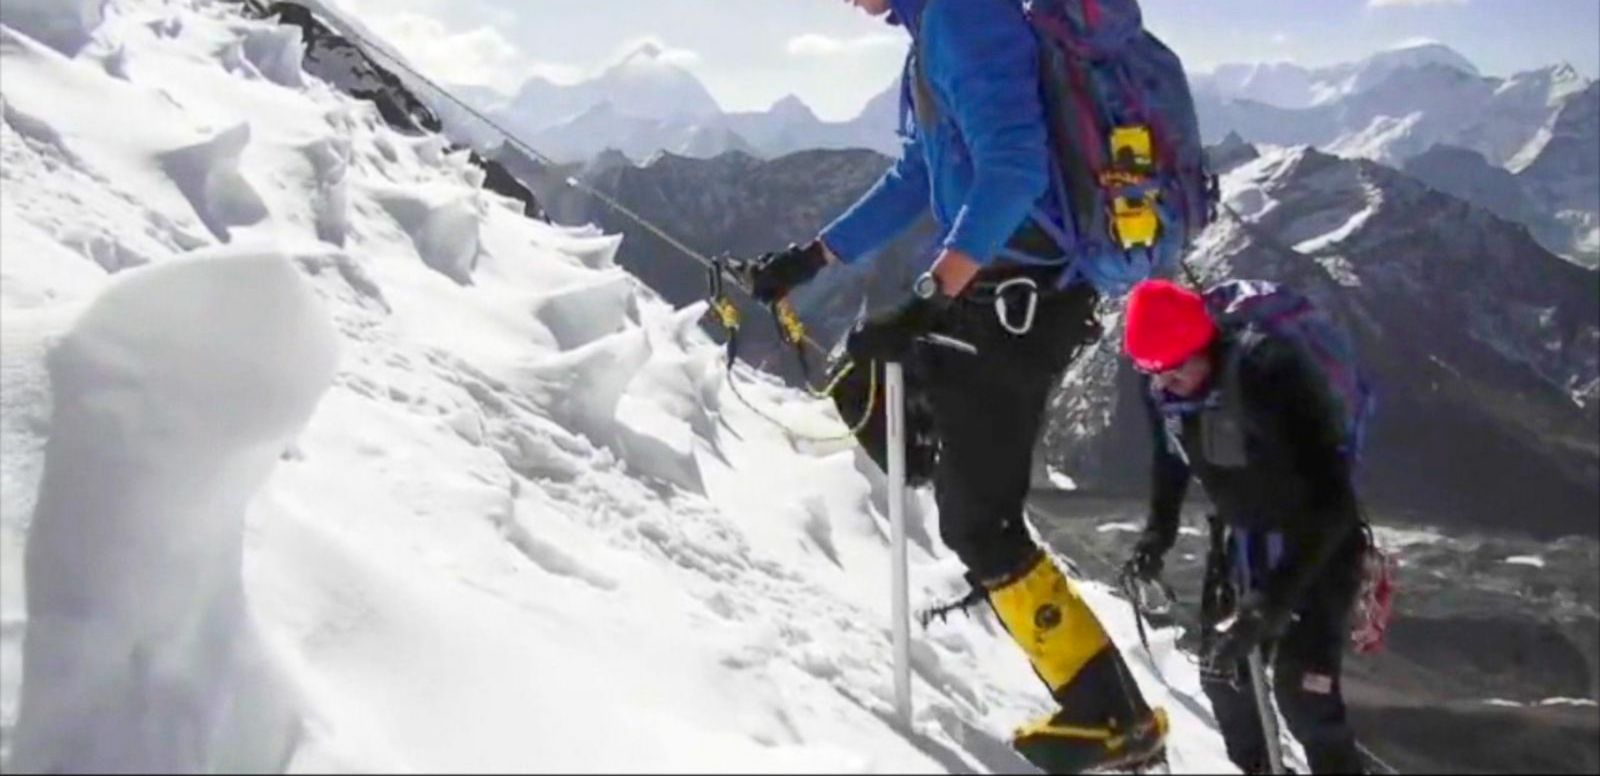 VIDEO: Celebrating Wounded Warriors on Top of the World